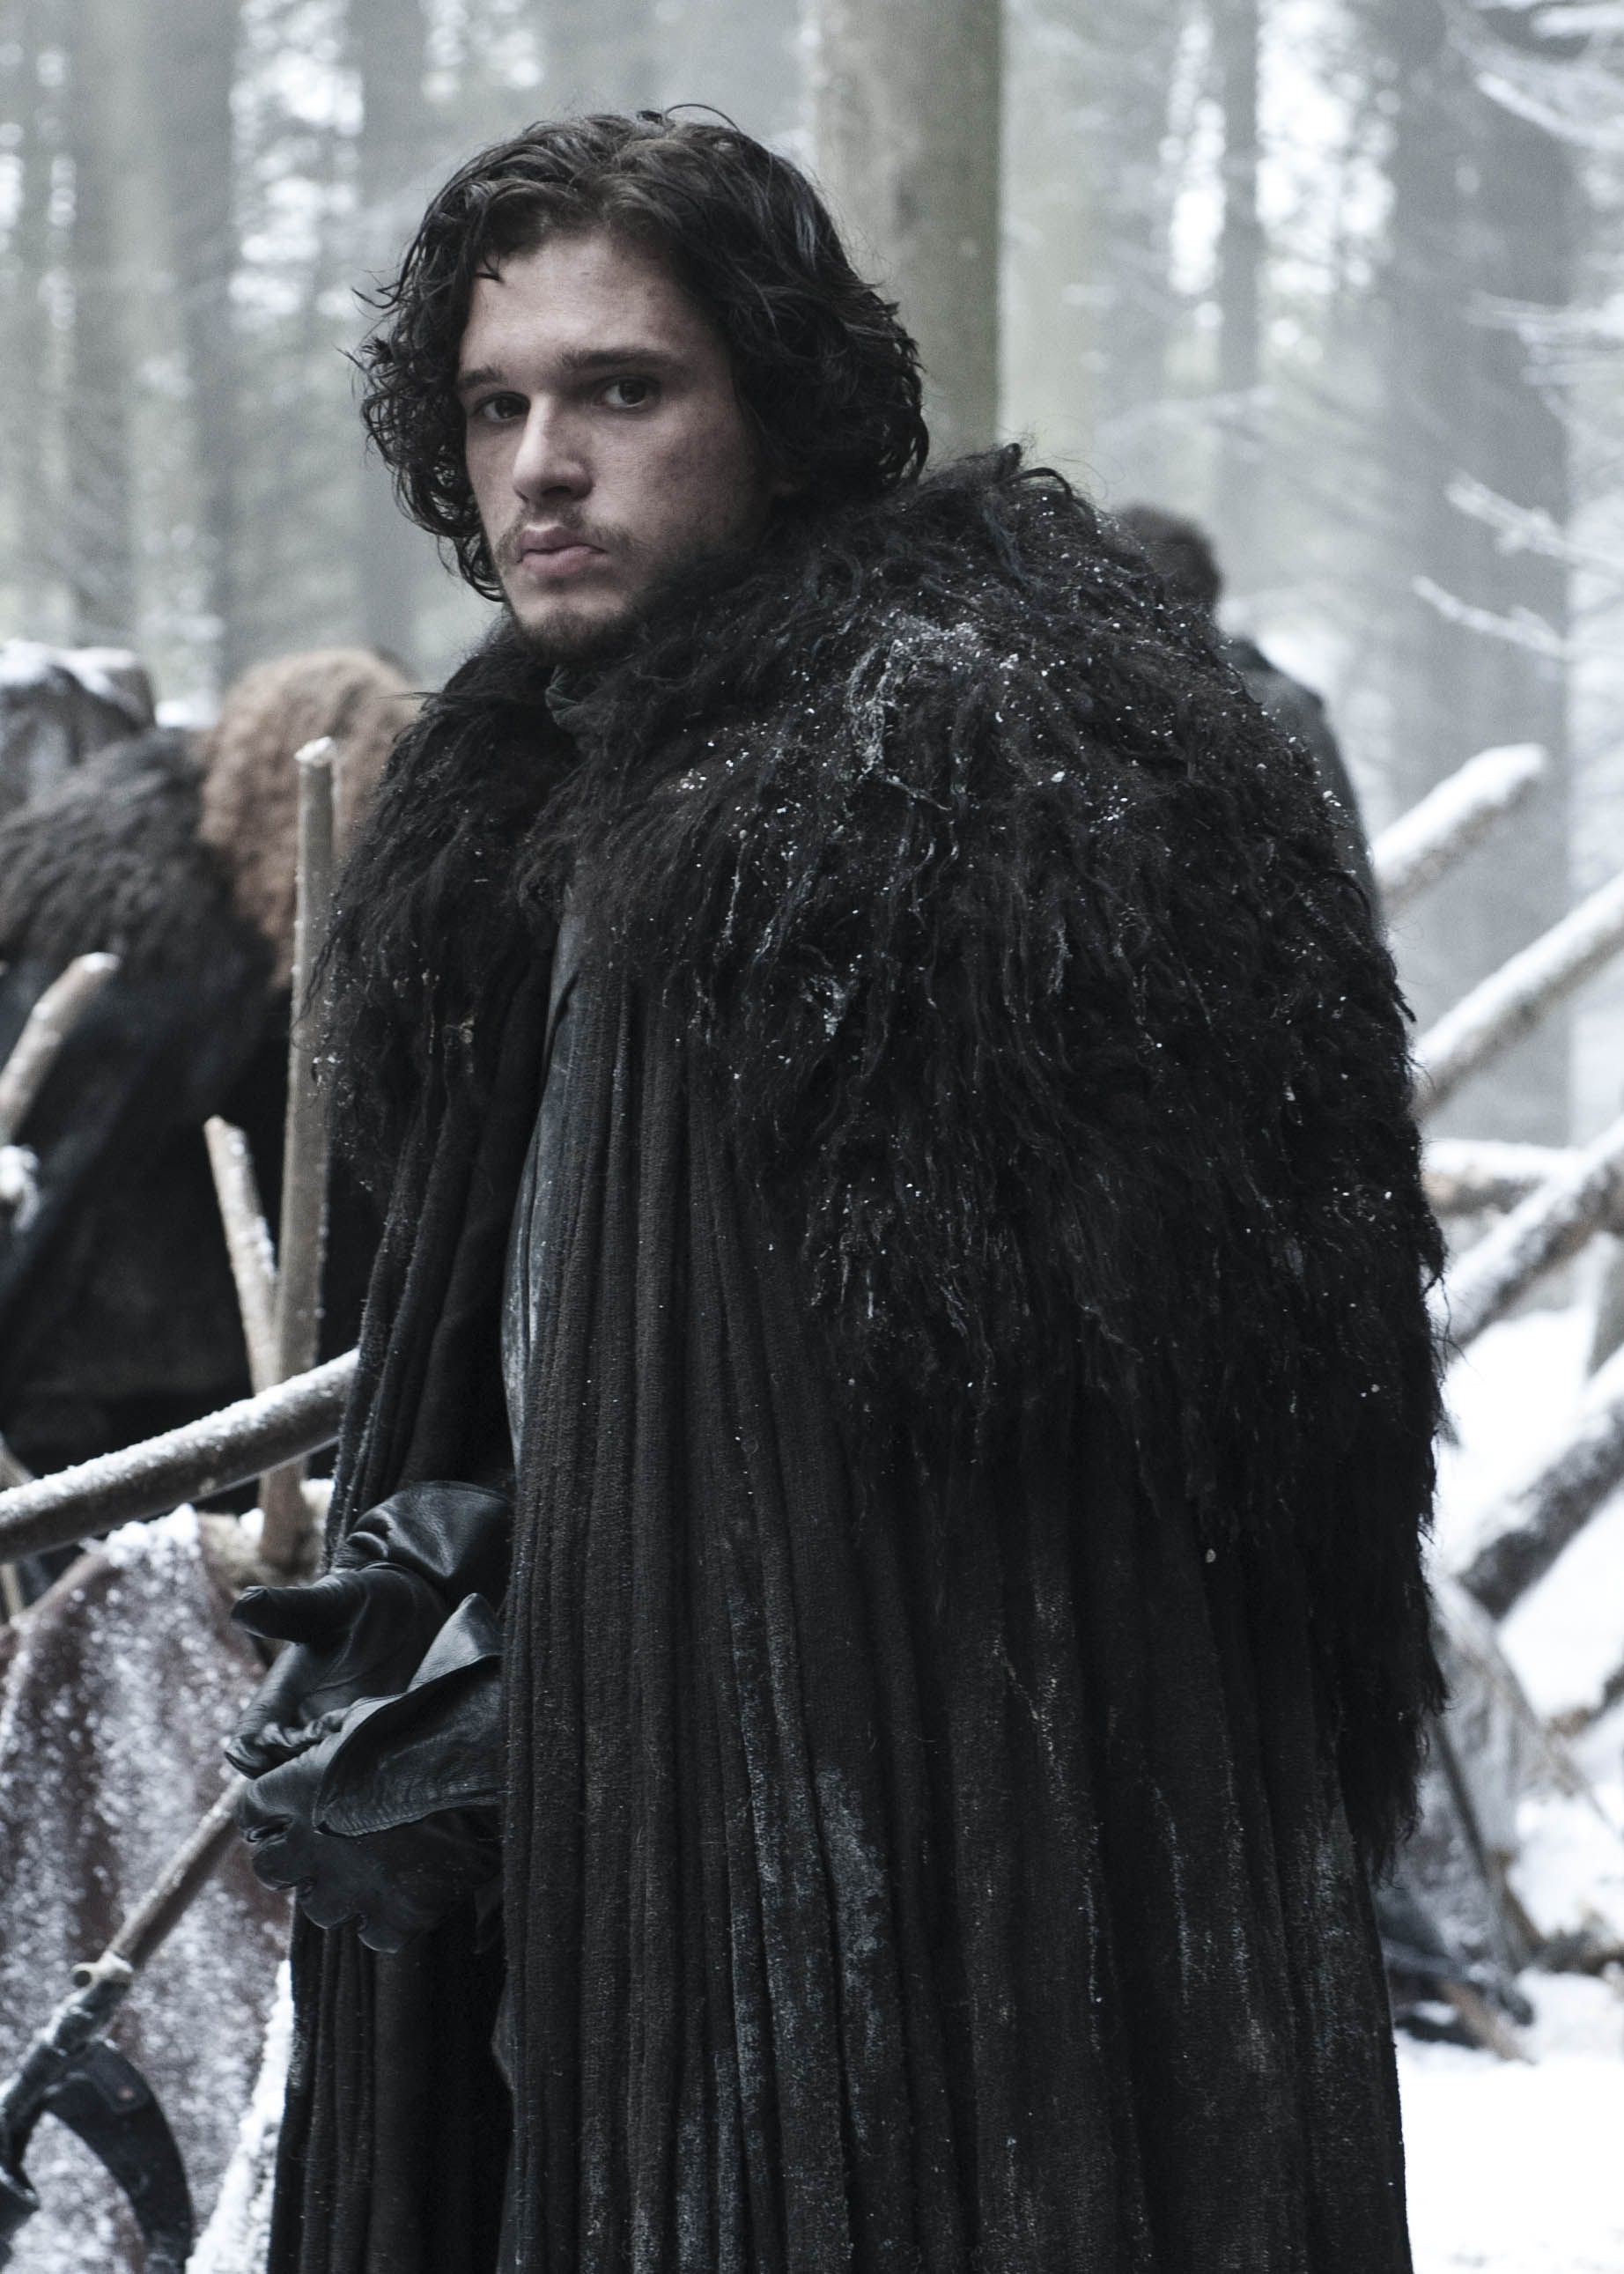 kit haringtone as jon - photo #16